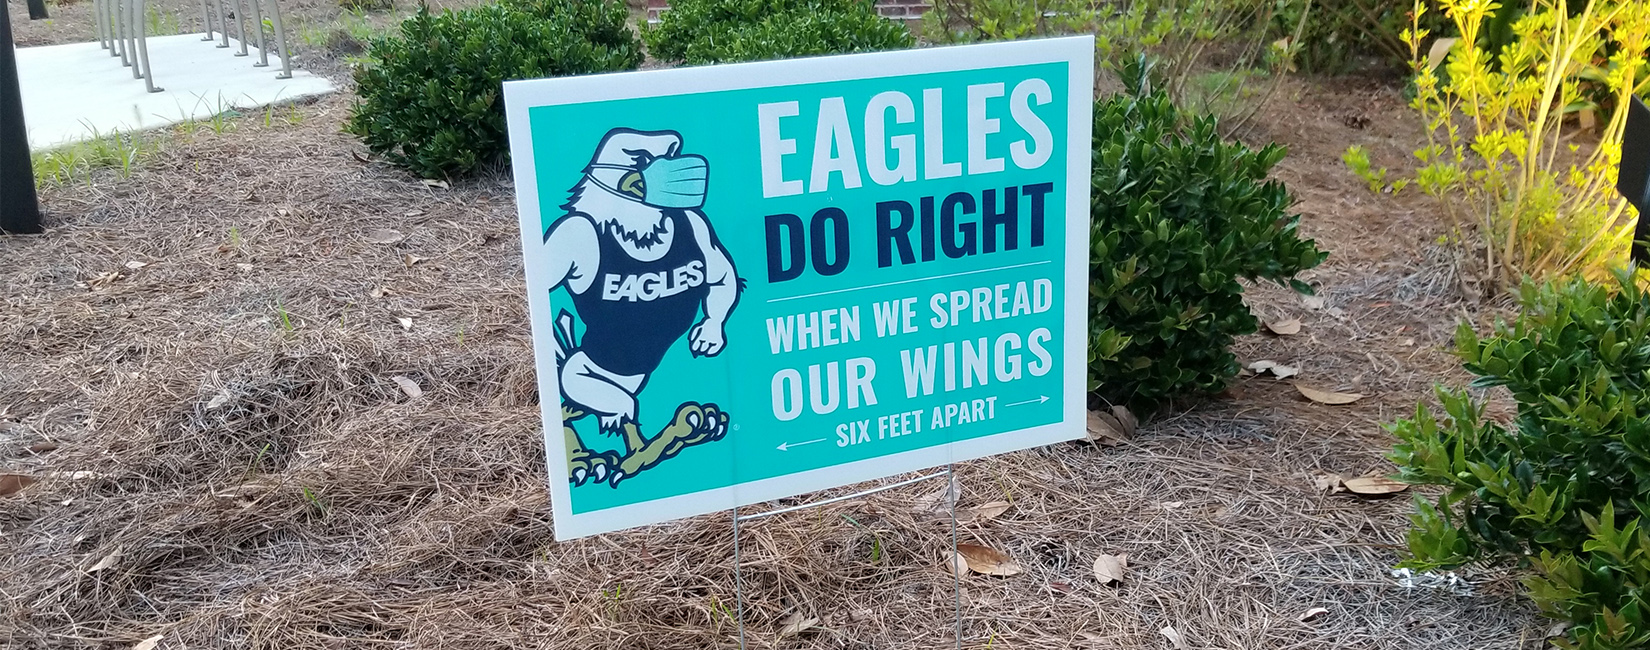 Georgia Southern University Eagles COVID distancing sign.